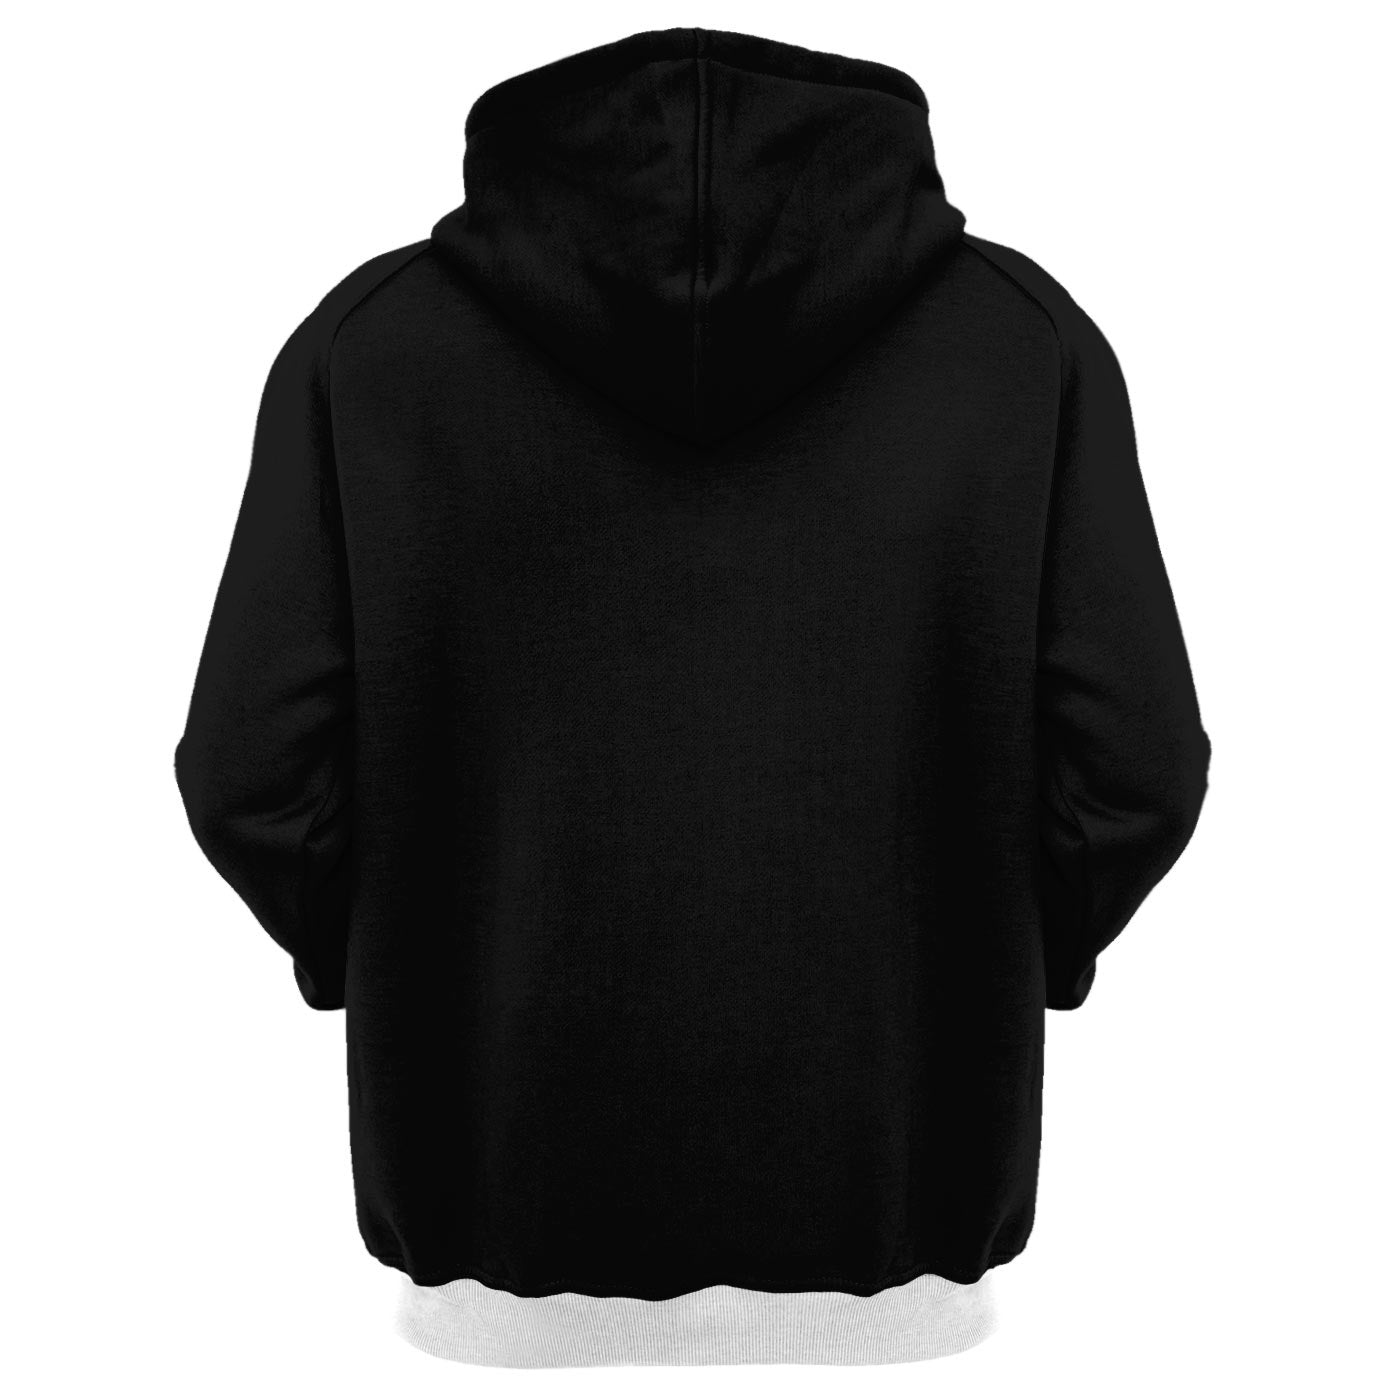 The Thinker Hoodie